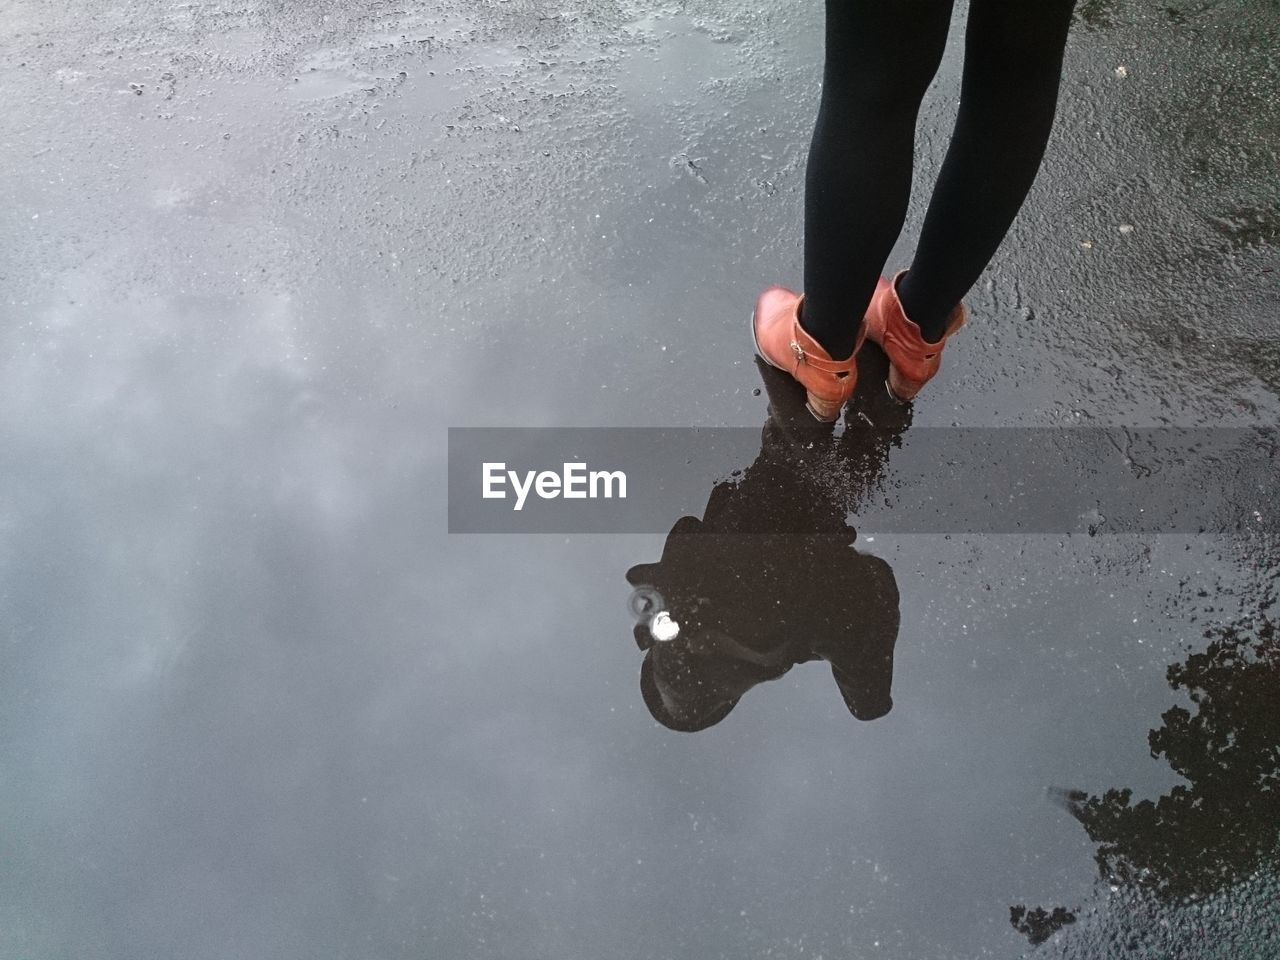 Woman standing in puddle